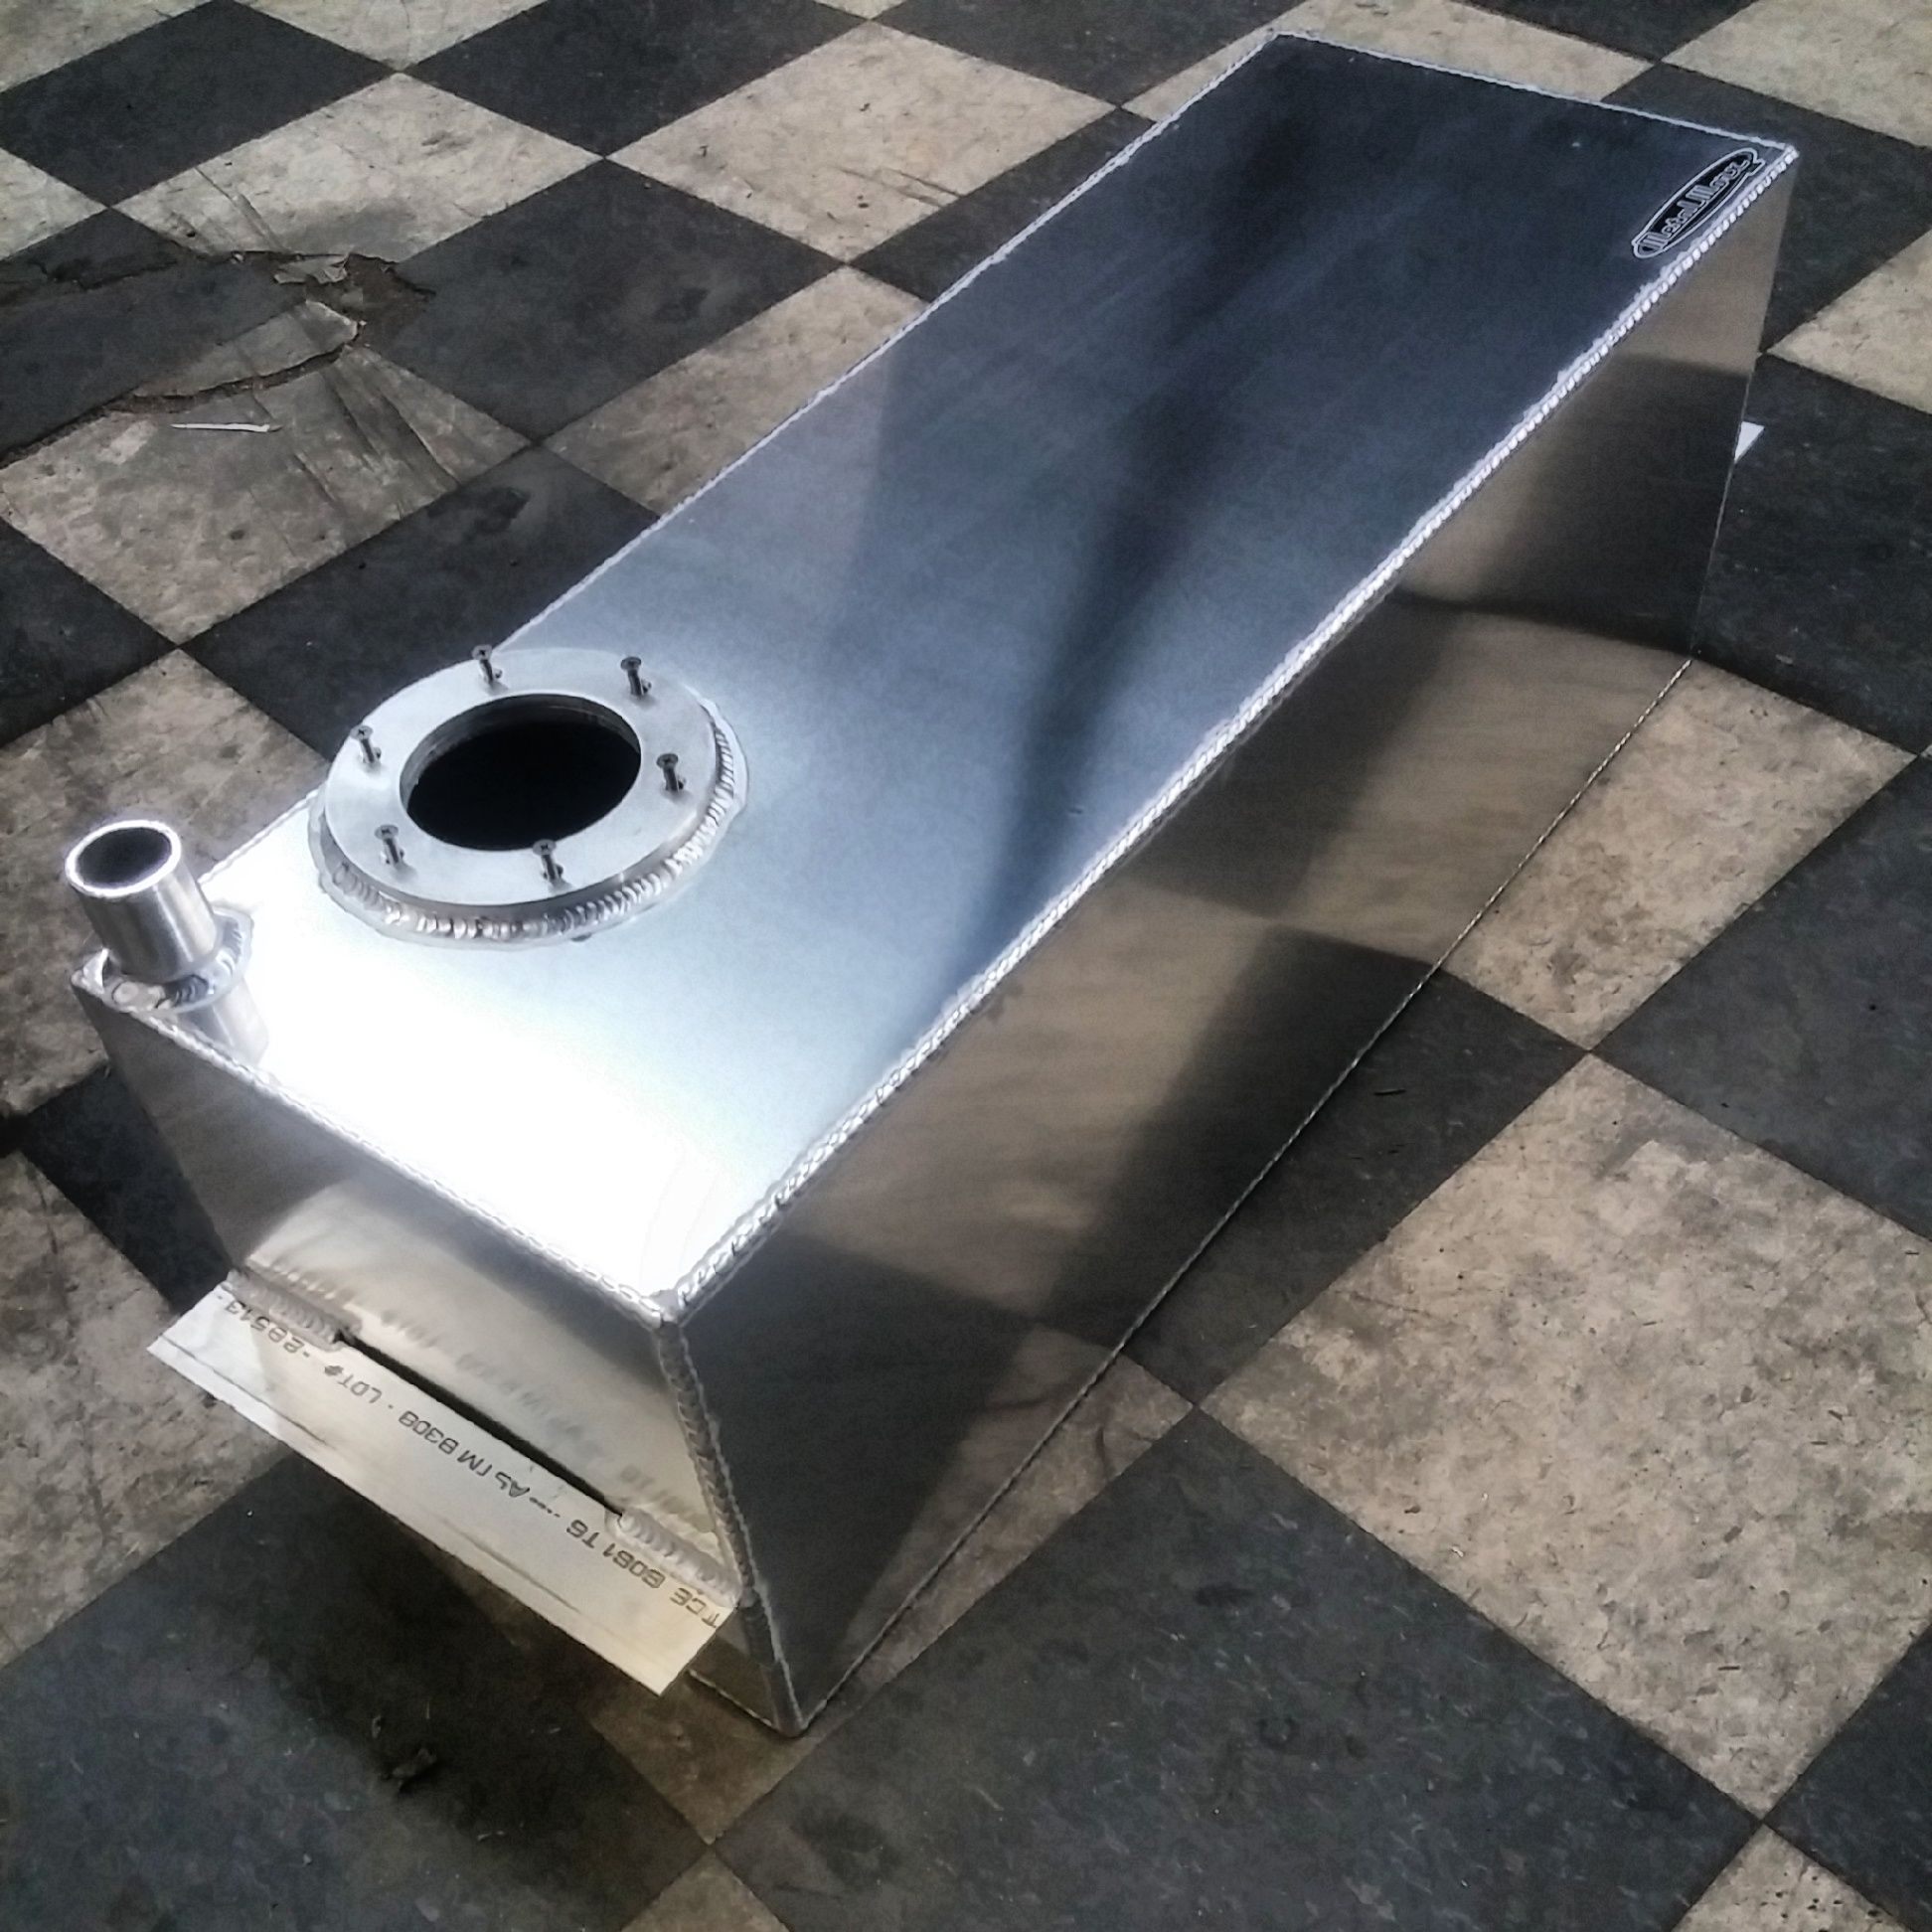 hight resolution of a 34x12x12 aluminum fuel cell for a chevrolet s10 with a 2 filler neck and stock fuel pump adapter rings